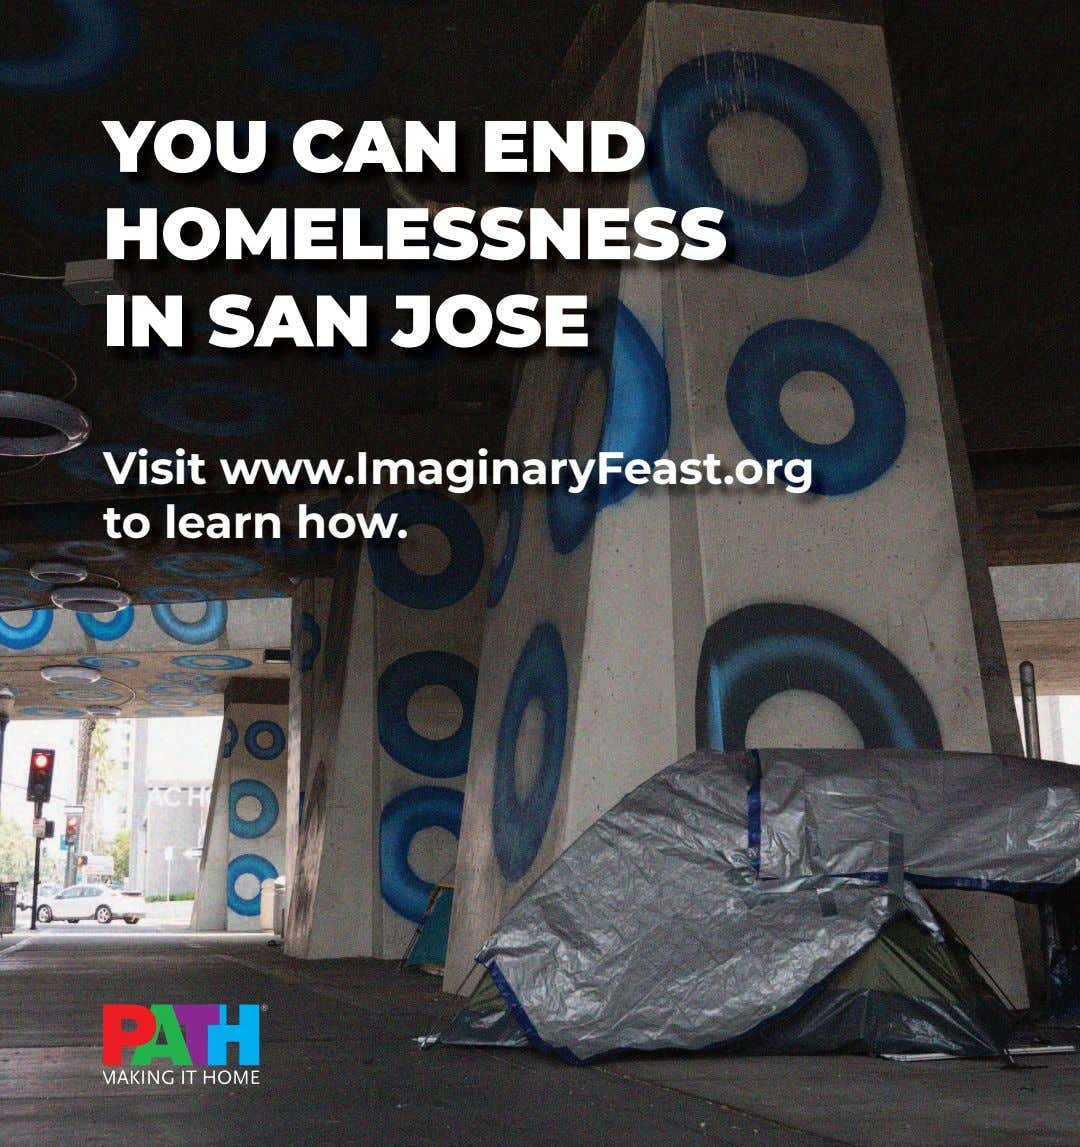 YOU CAN END HOMELESSNESS IN SAN JOSE Visit www.ImaginaryFeast.org to learn how.